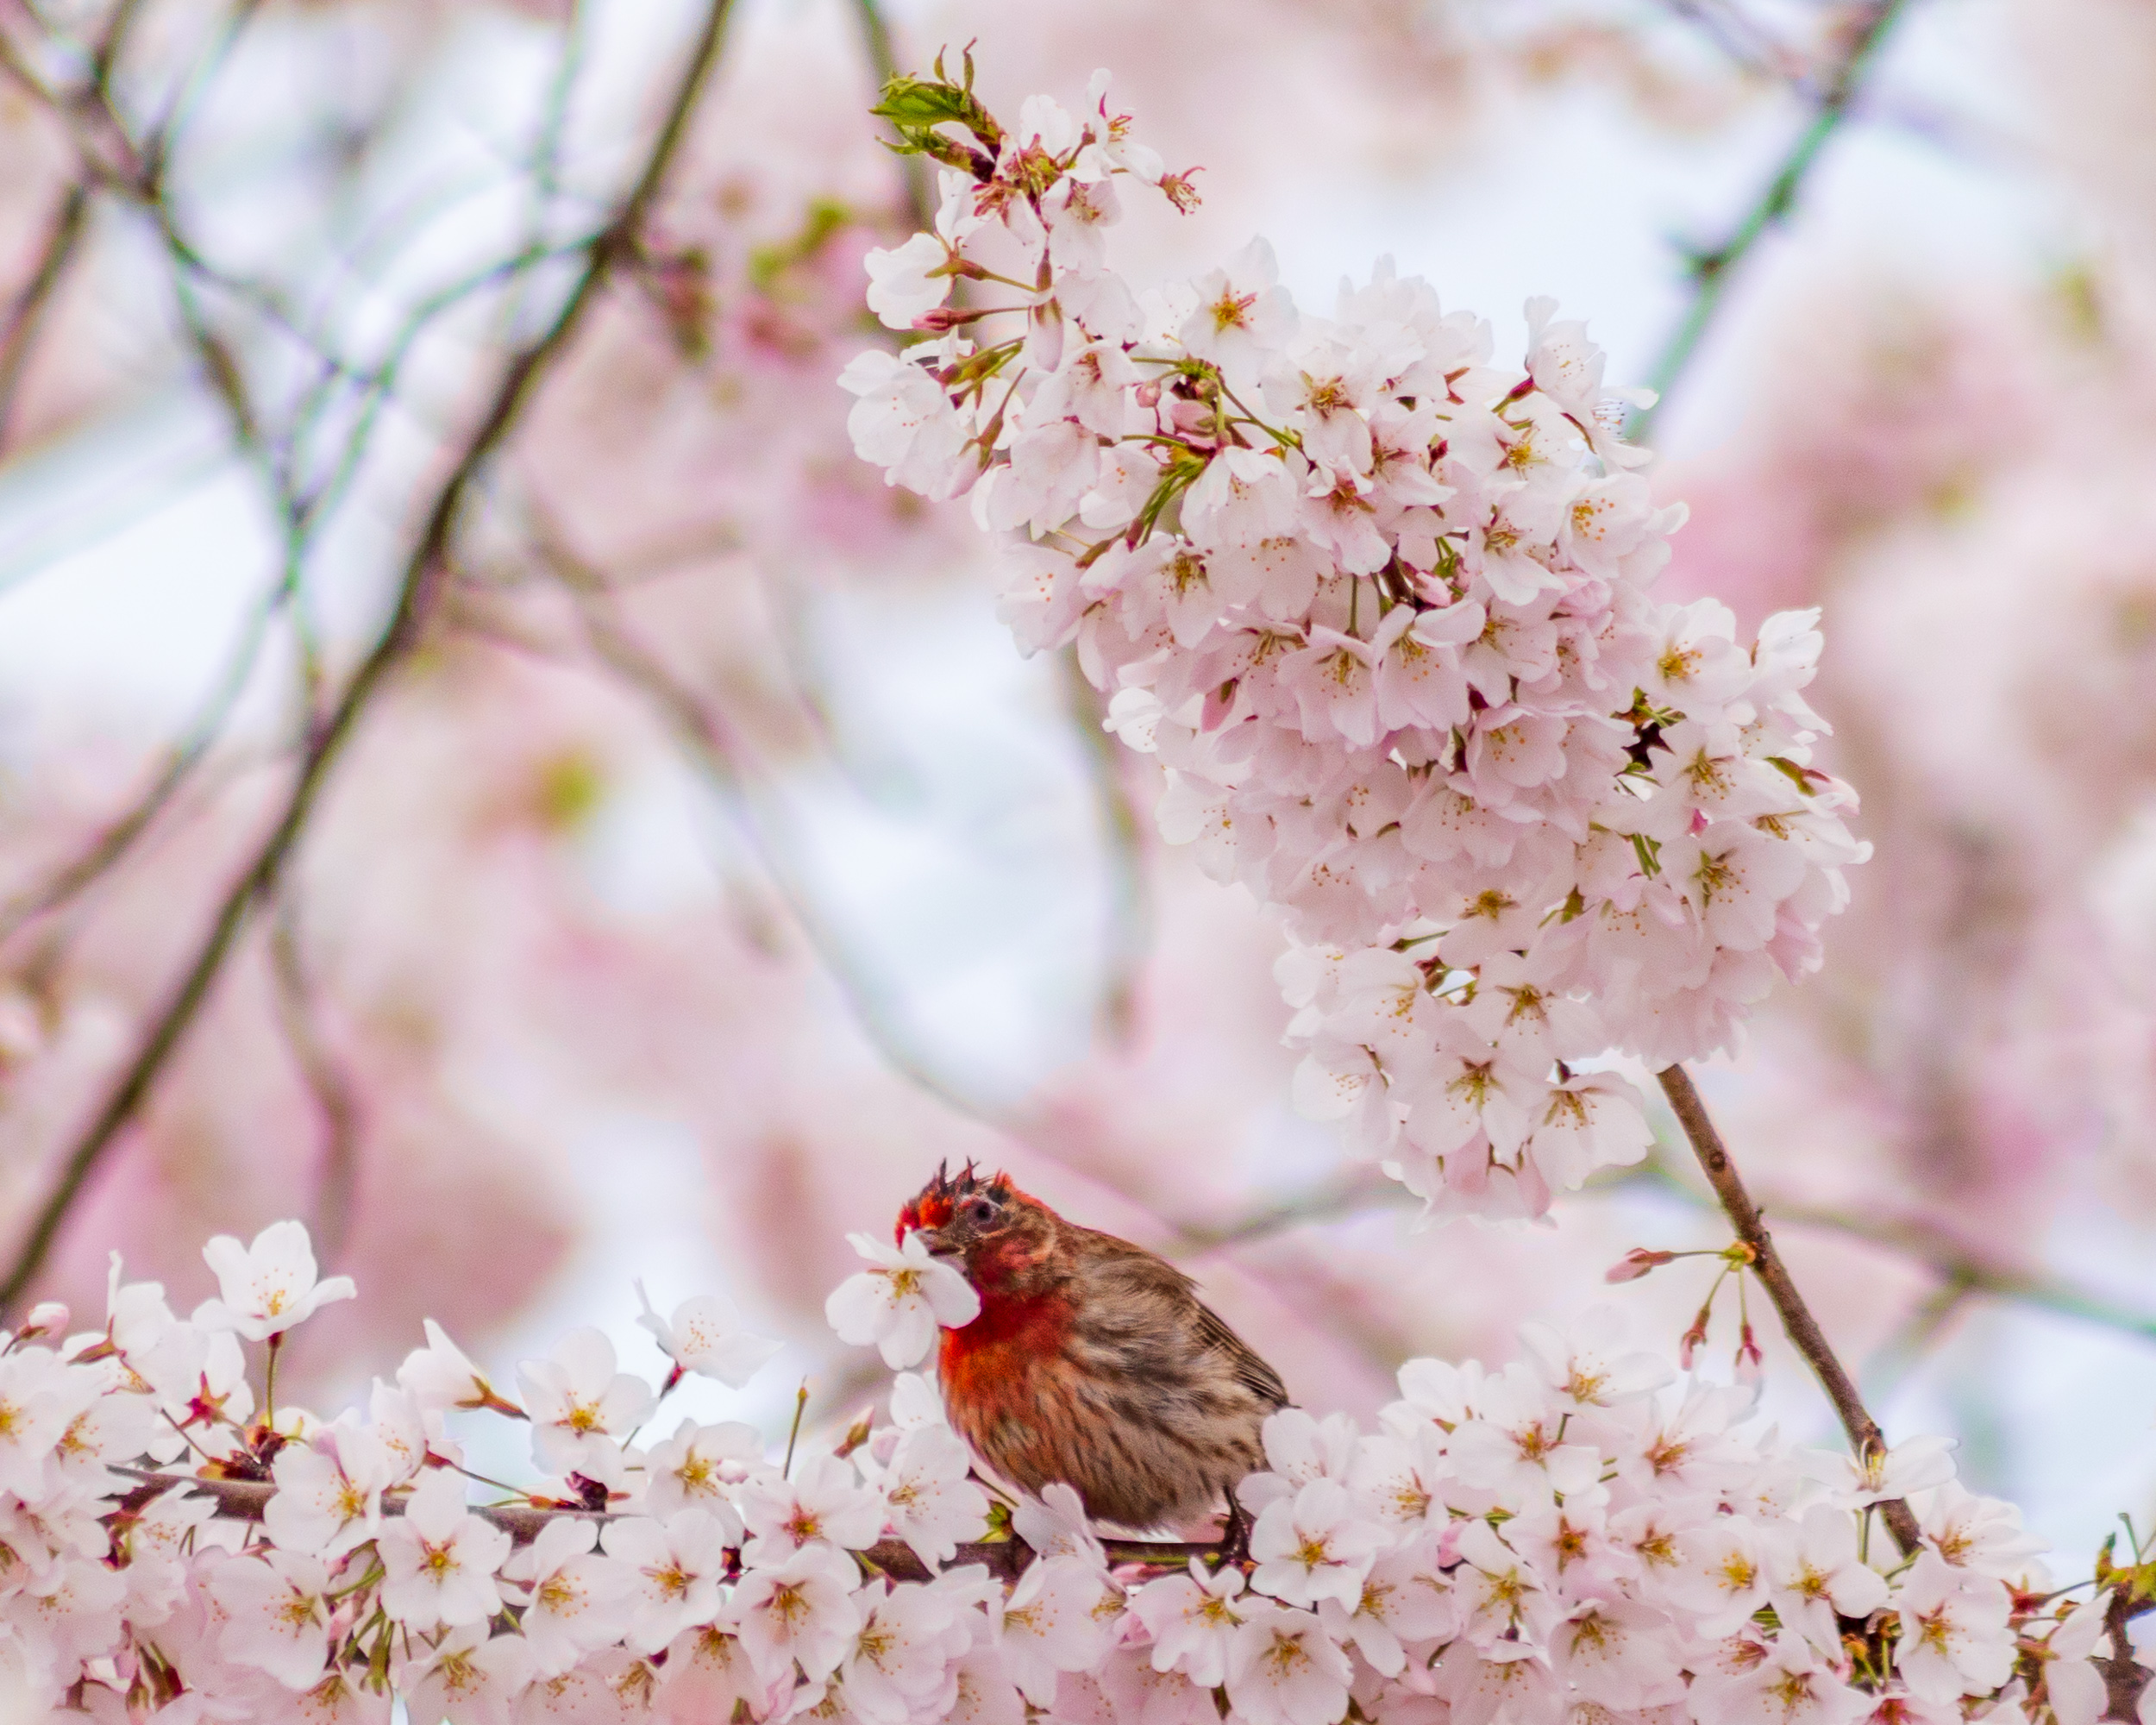 House Finch in Cherry Tree